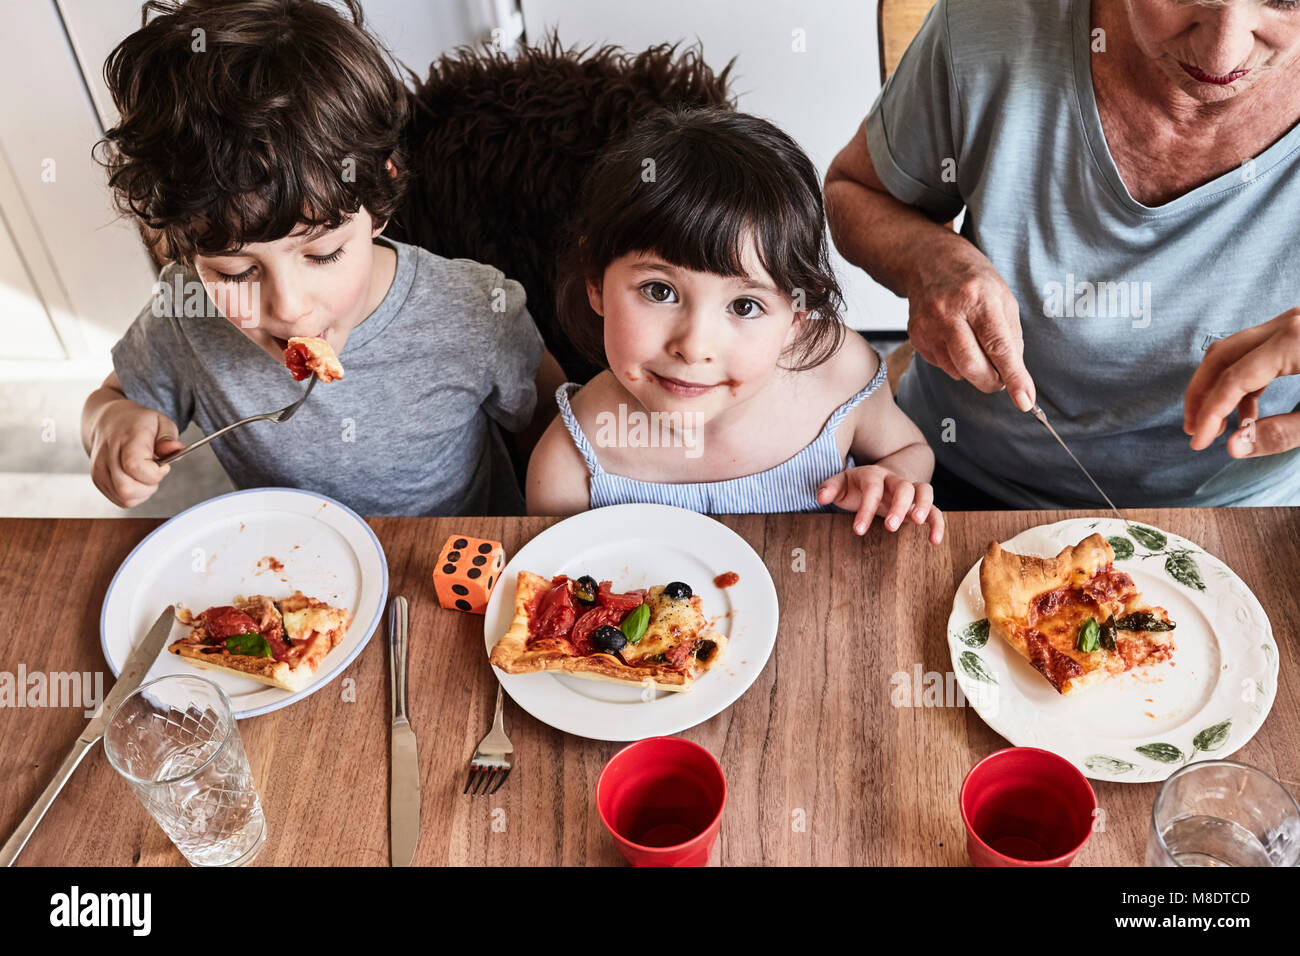 Grandmother sitting at kitchen table with grandchildren, eating pizza, elevated view - Stock Image